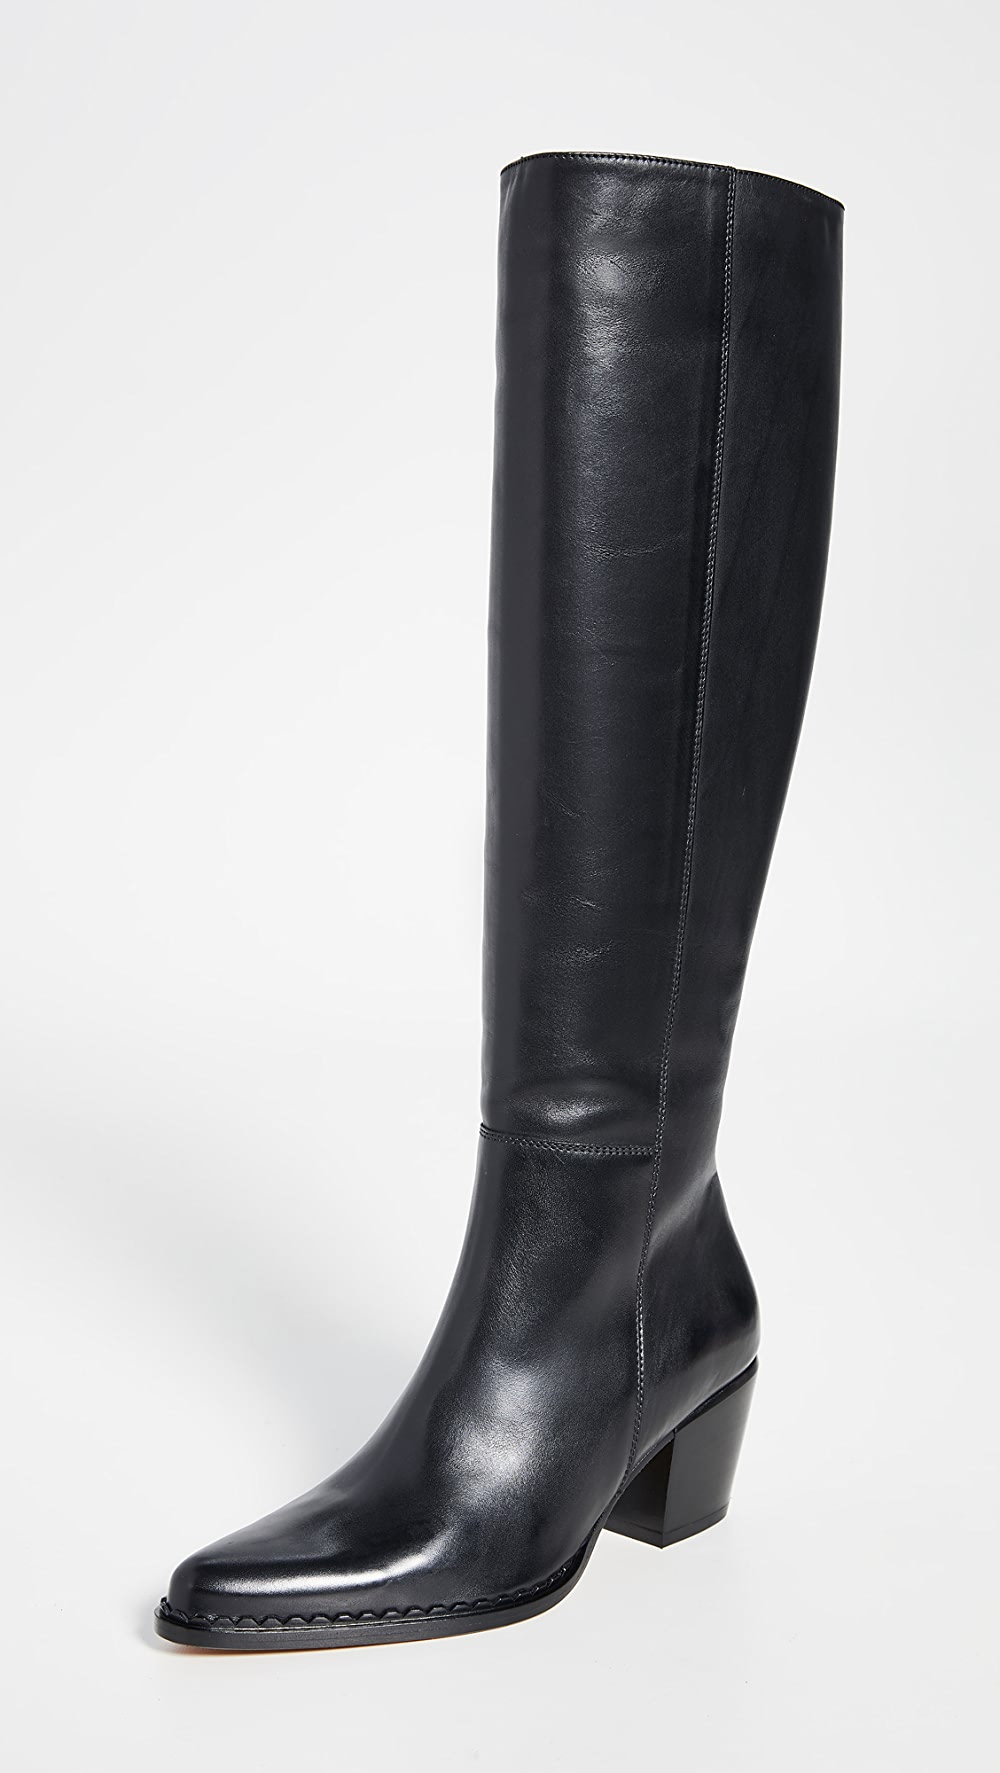 Able Vince - Hurley Tall Boots Crazy Price